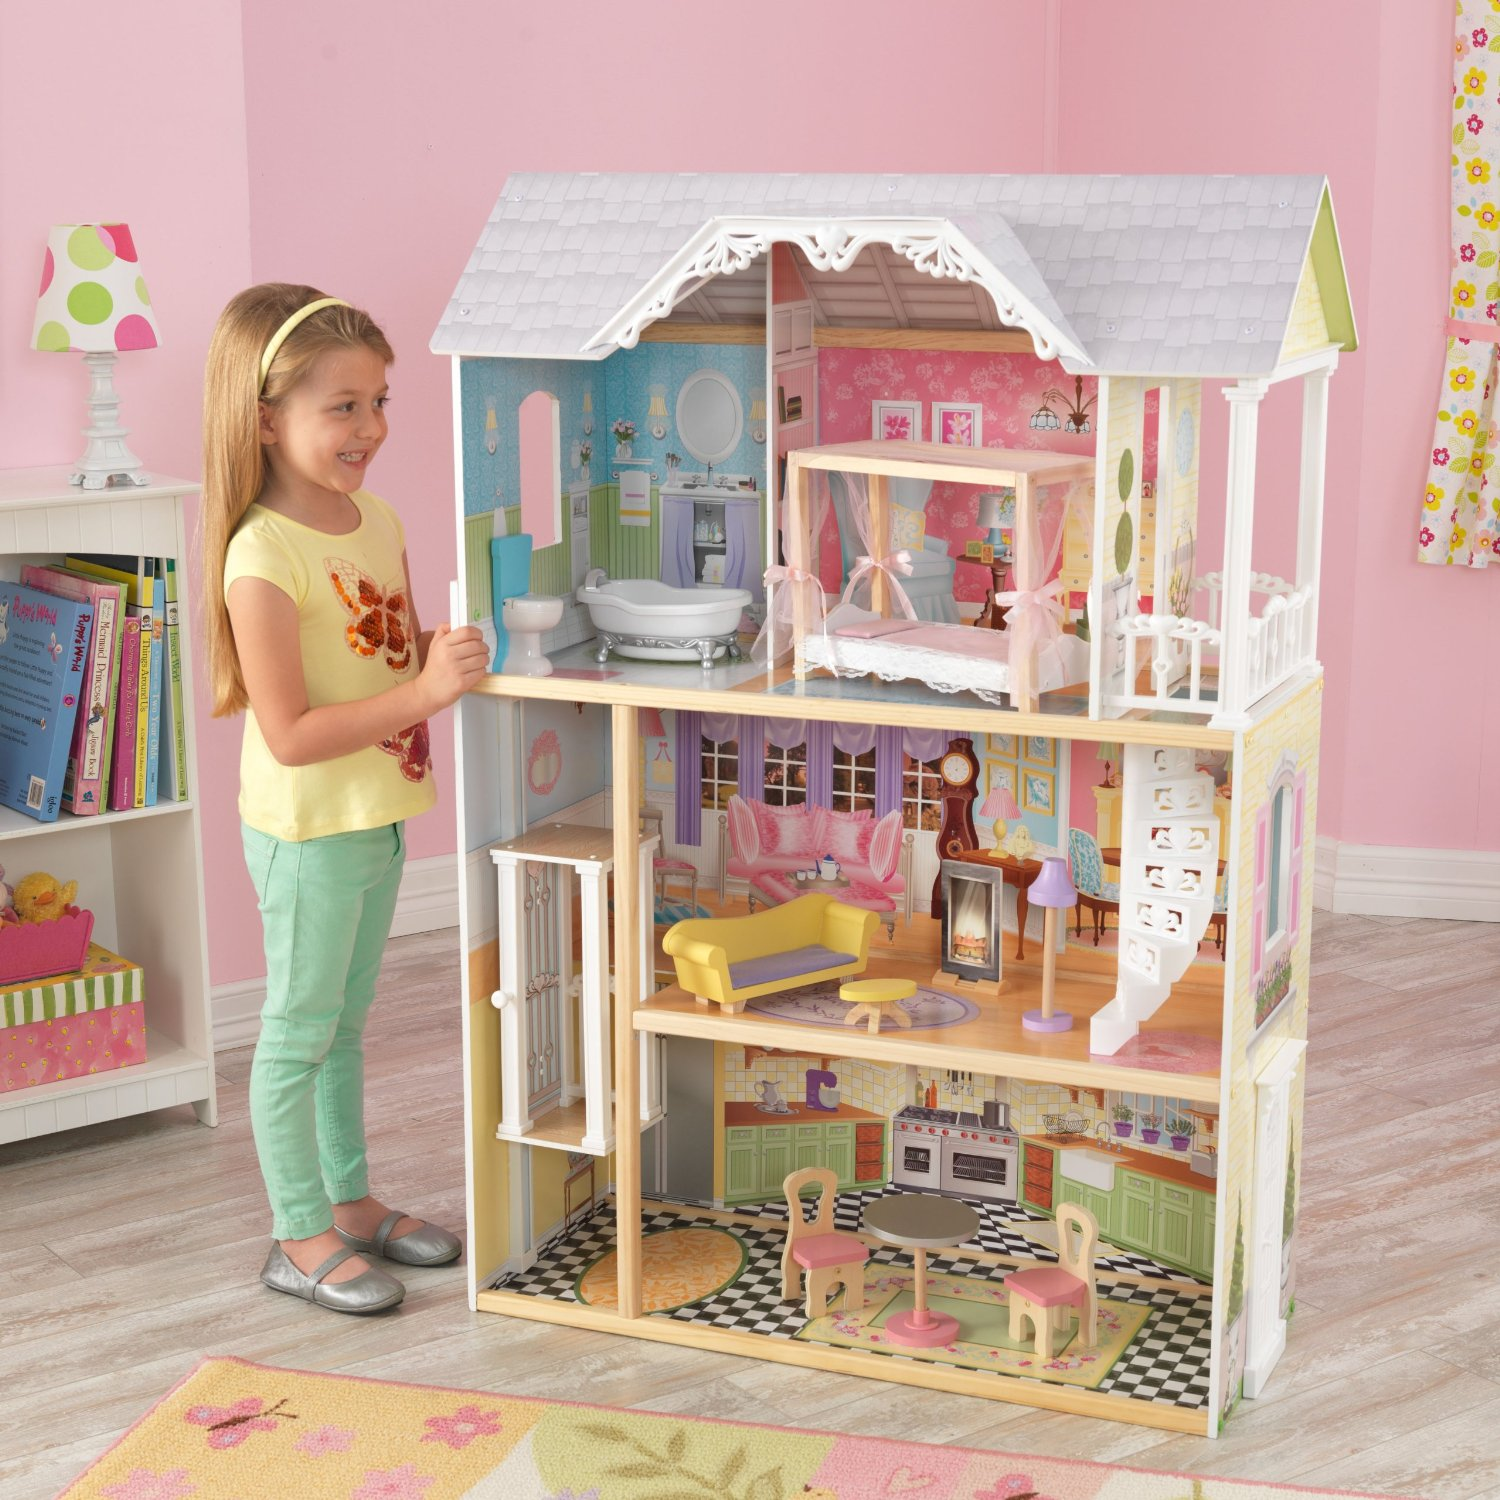 KidKraft Kaylee dollhouse review